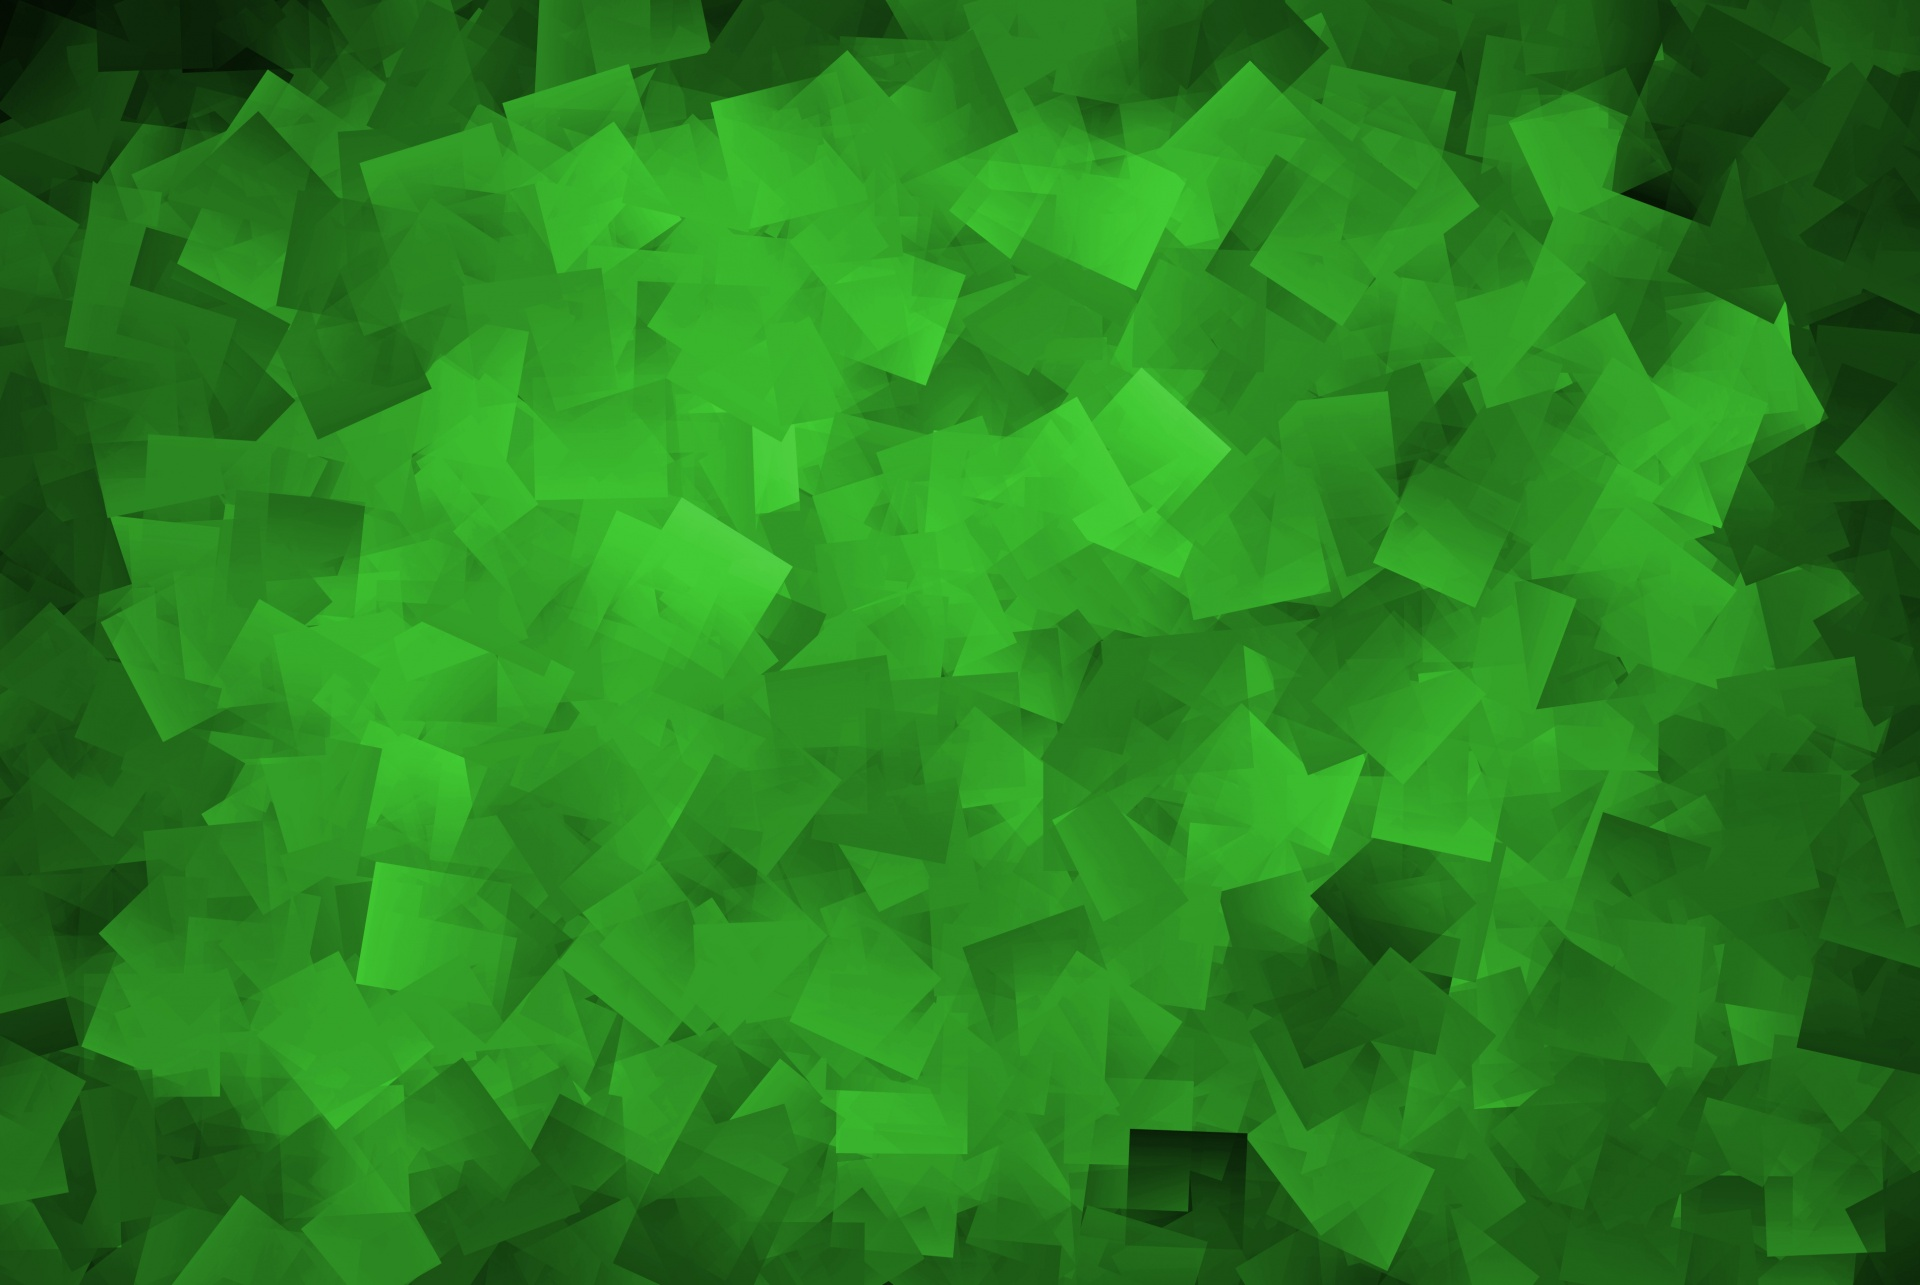 Wallpaper Background Squares Abstract Green Free Image